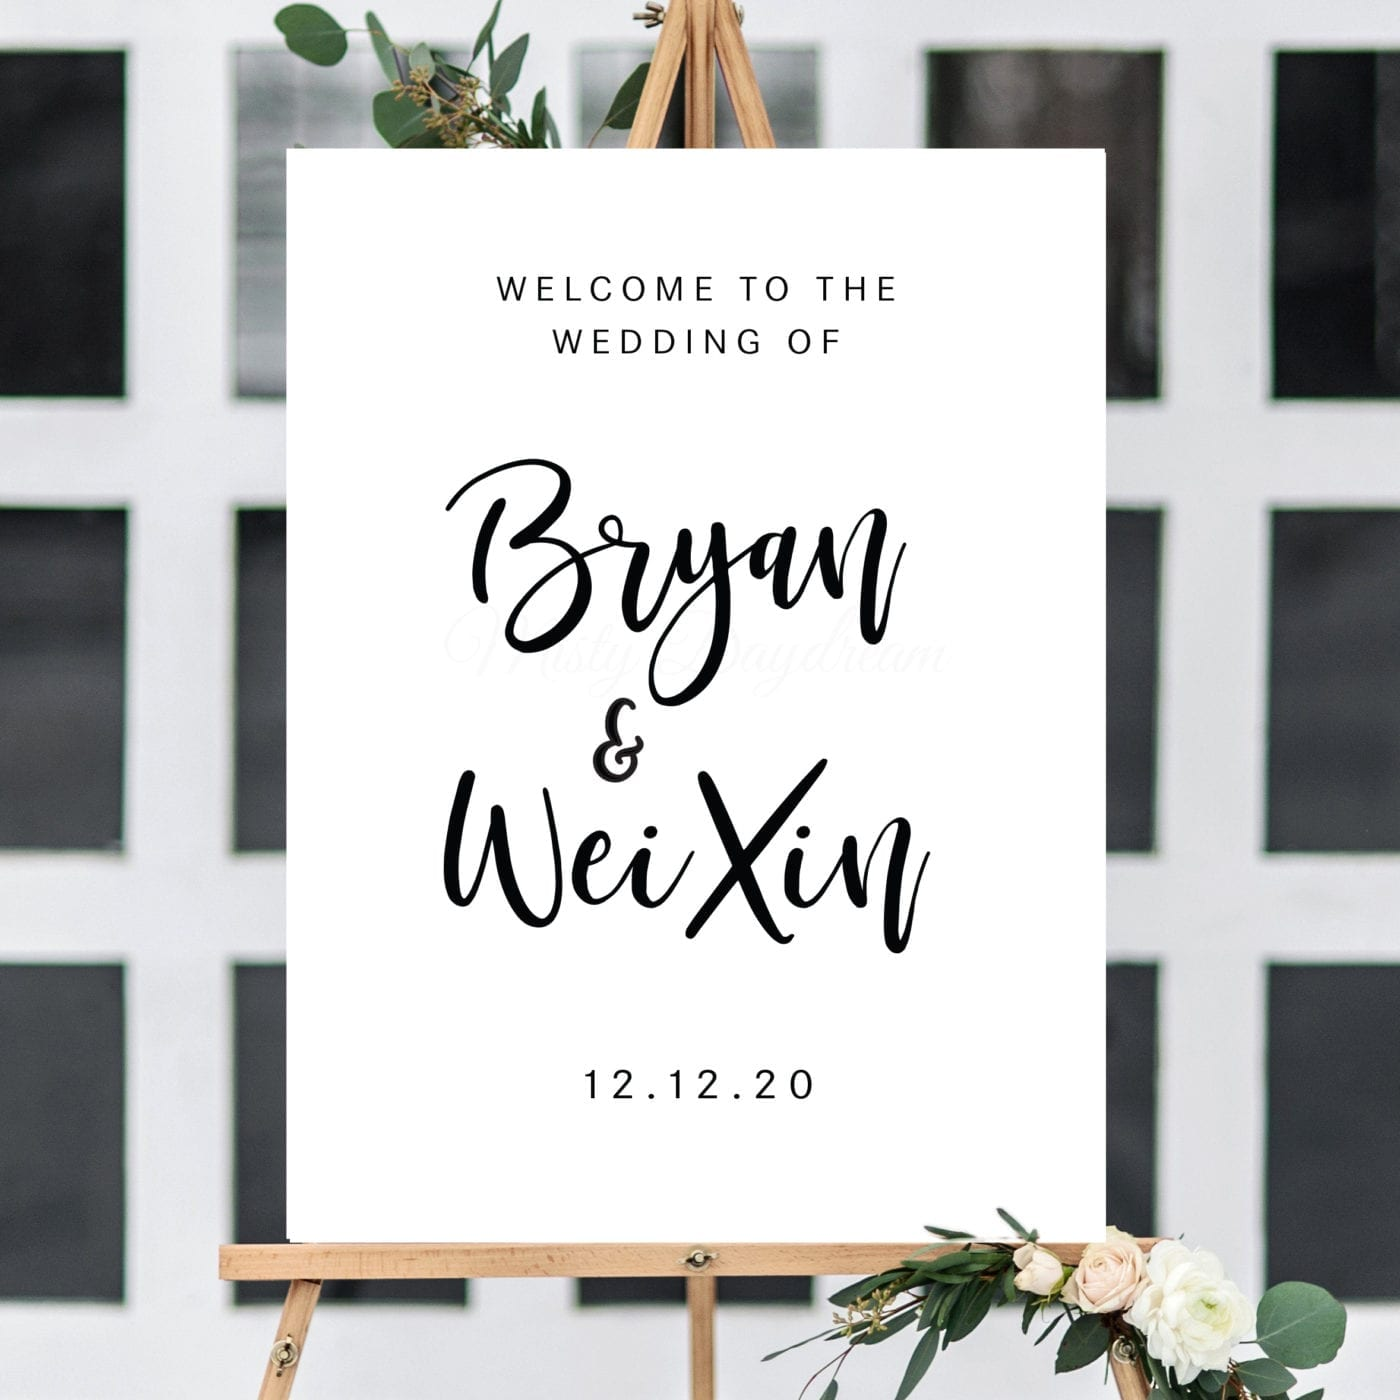 Wedding Welcome Sign.Wedding Welcome Sign Design 10 Foam Board